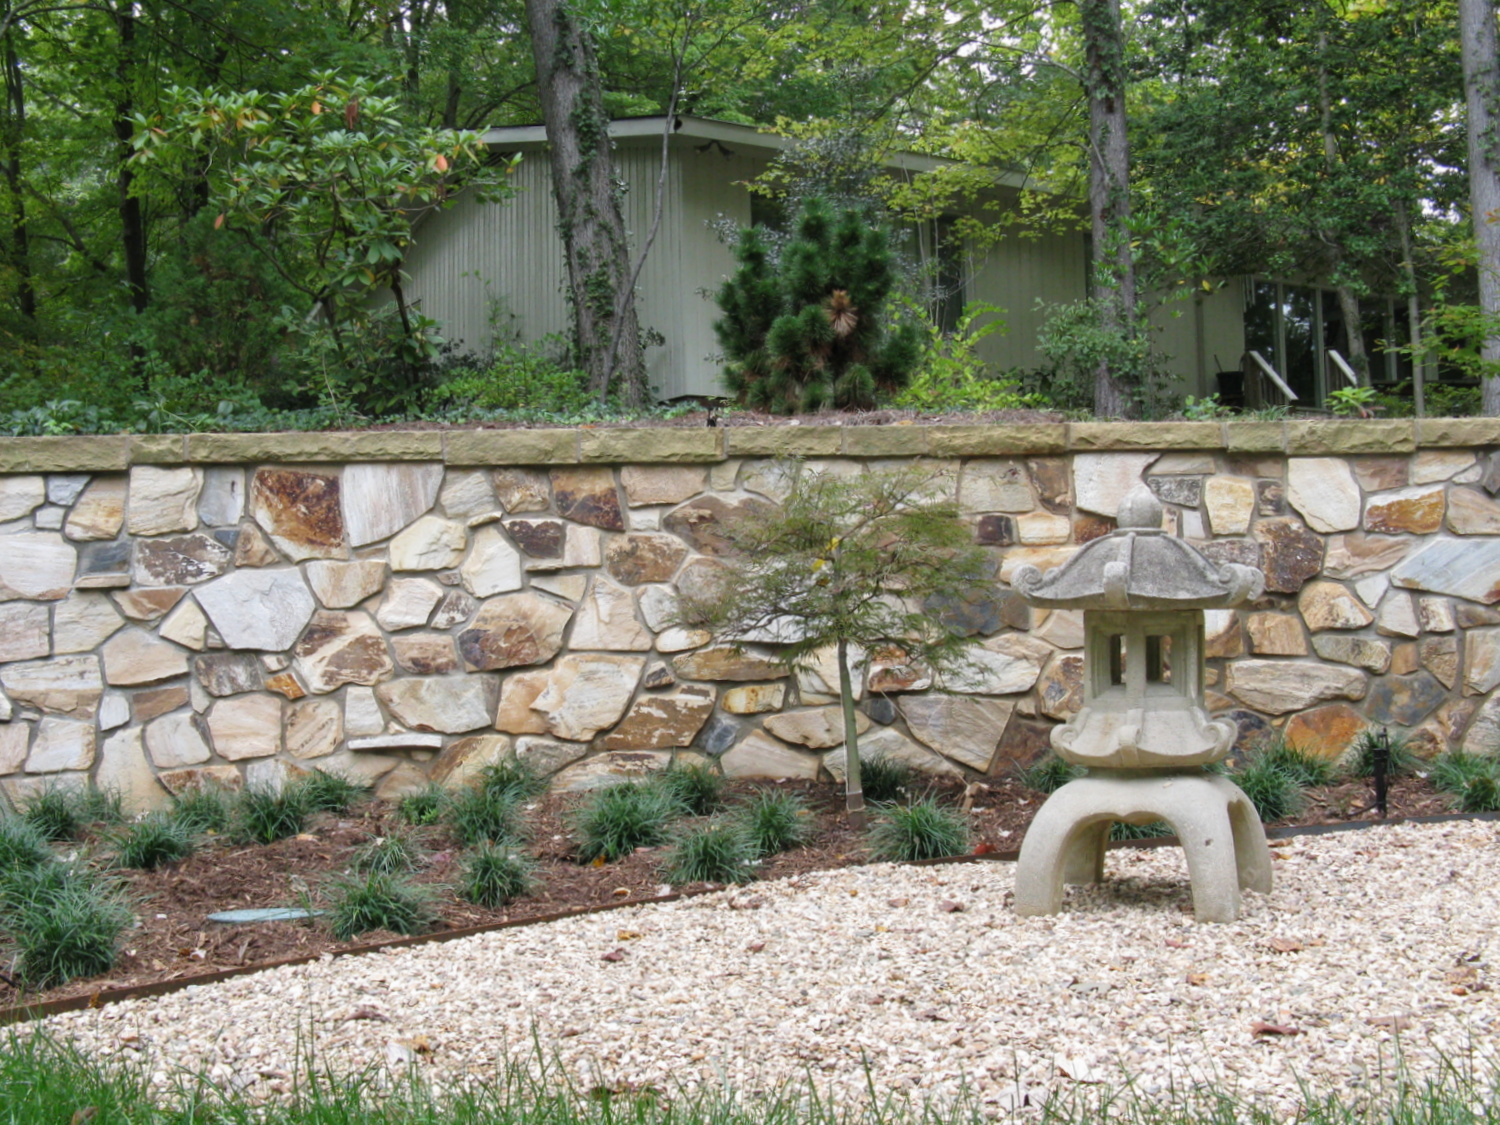 Retaining wall with sandstone cap and rock garden in foreground